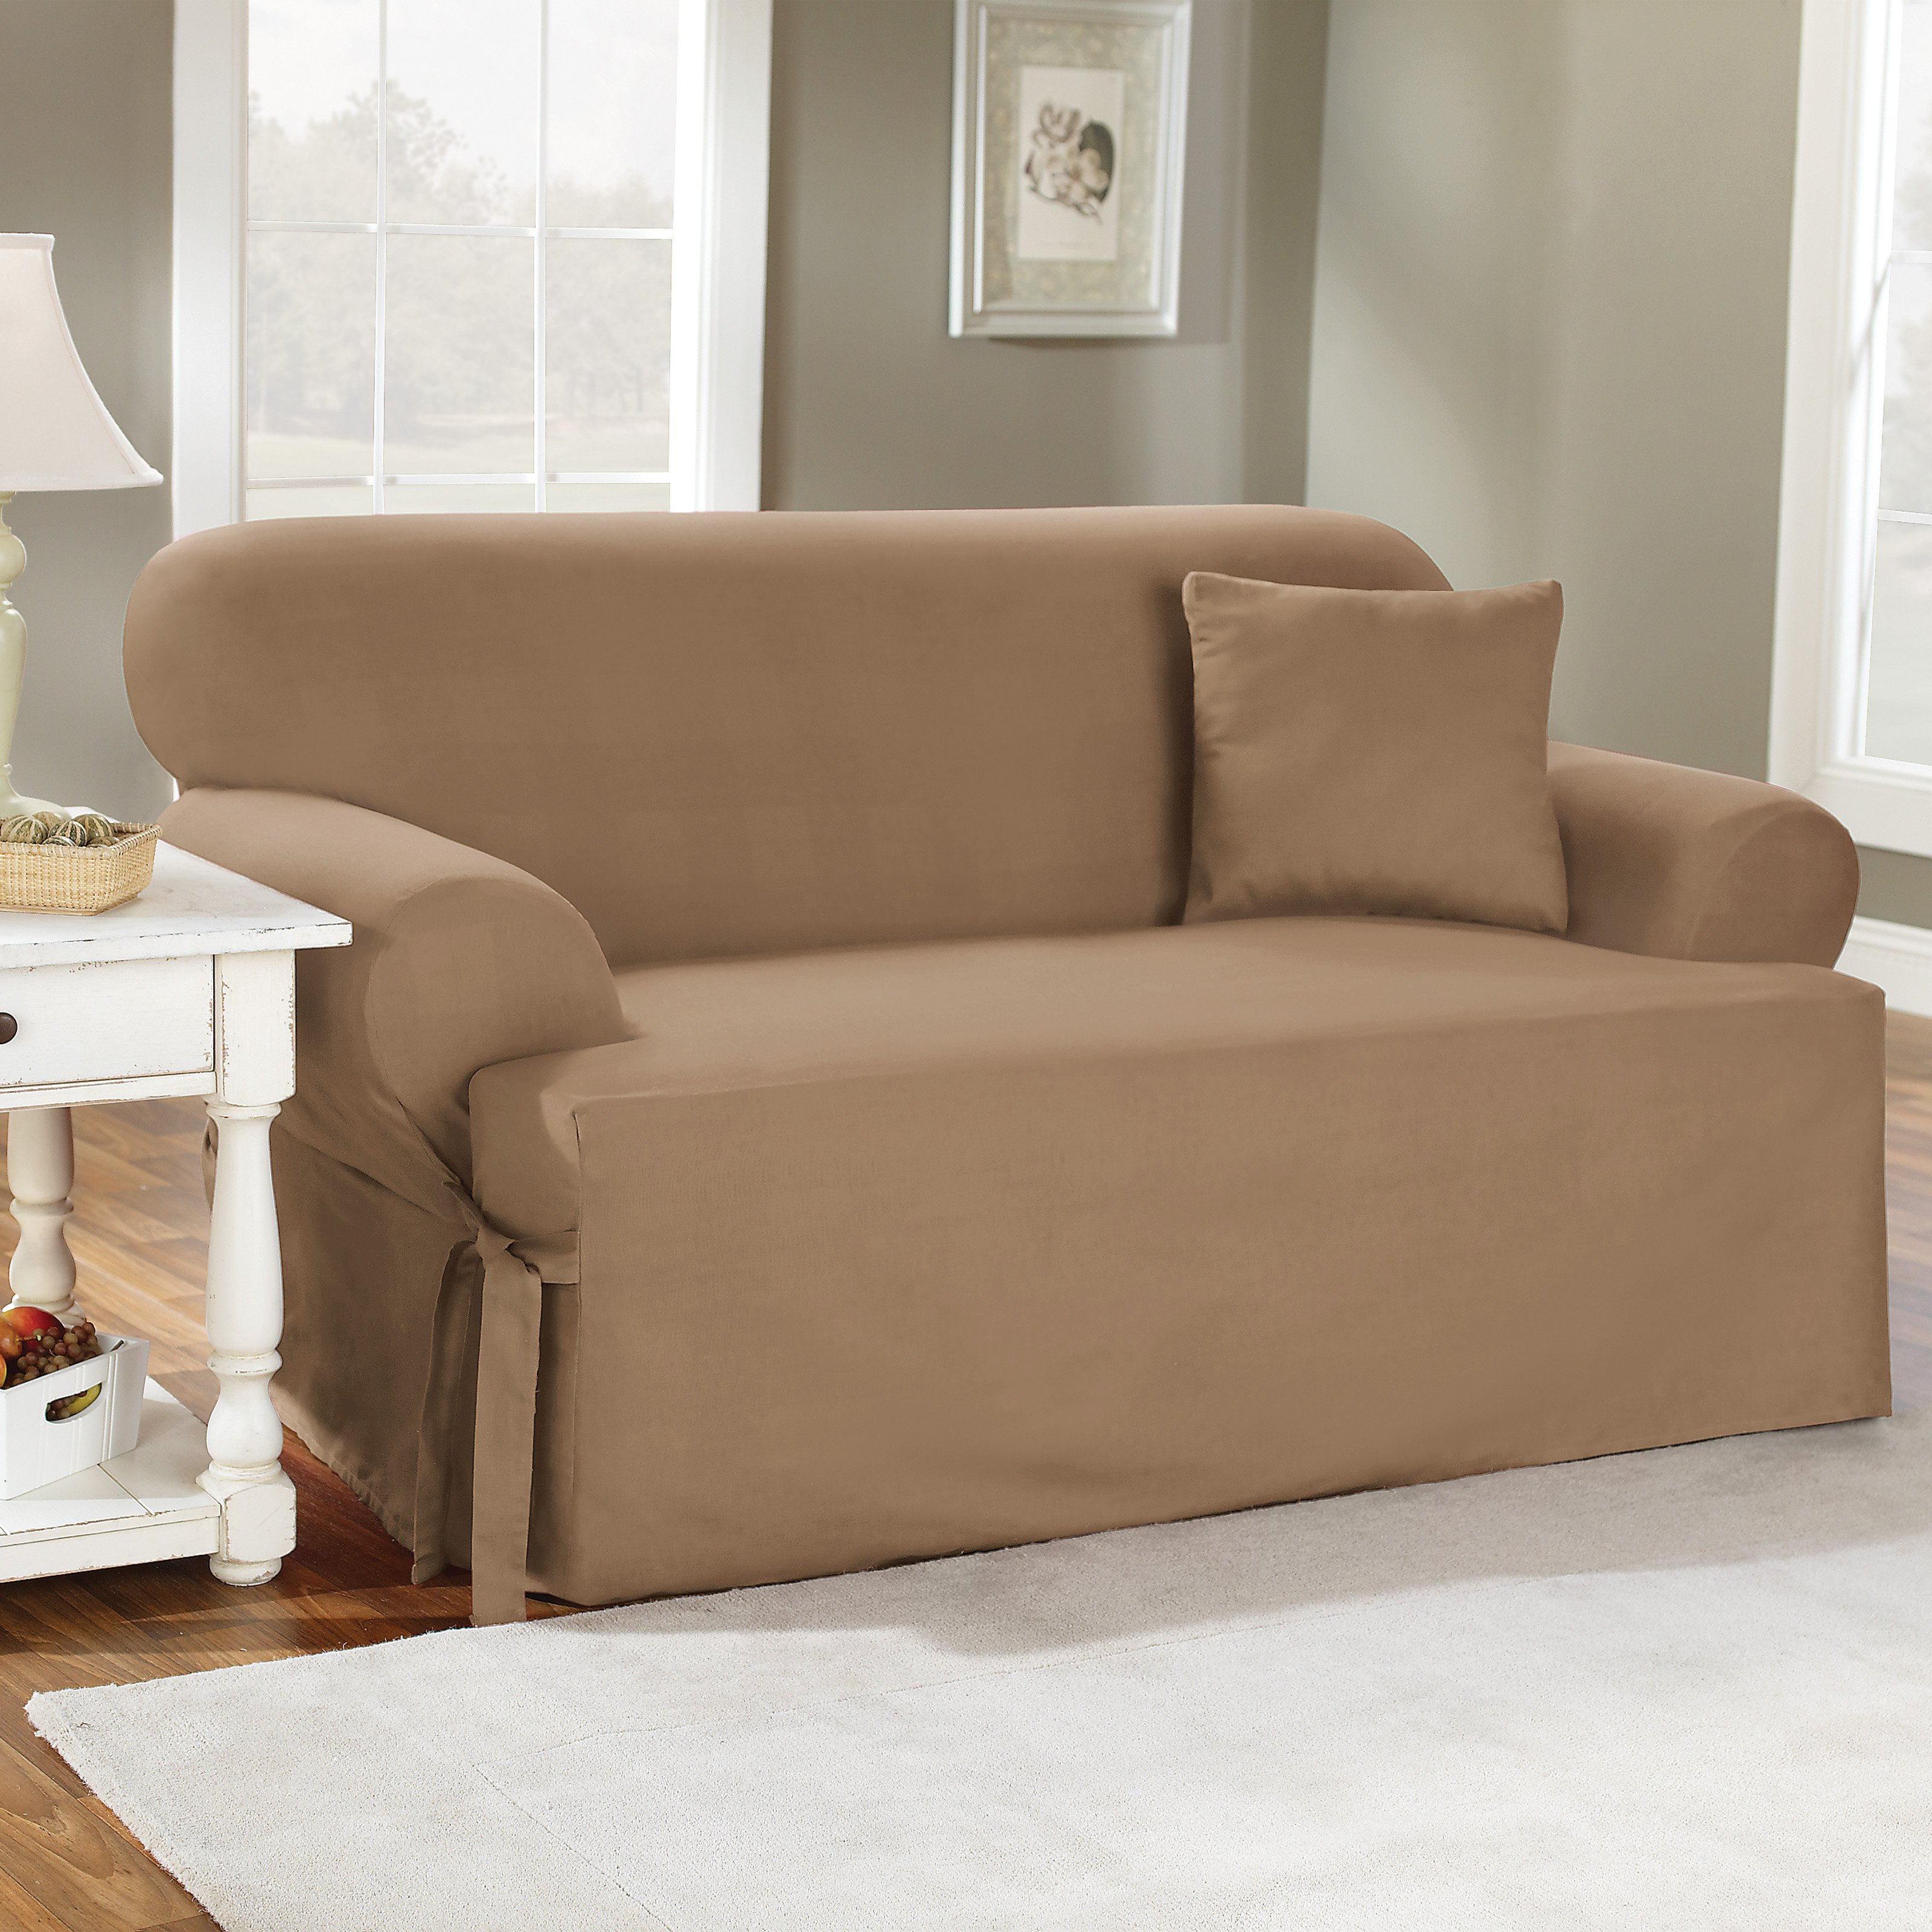 Couch Covers for Reclining Sofa | Slipcover for Reclining Sofa | Sure Fit  Dual Reclining Sofa